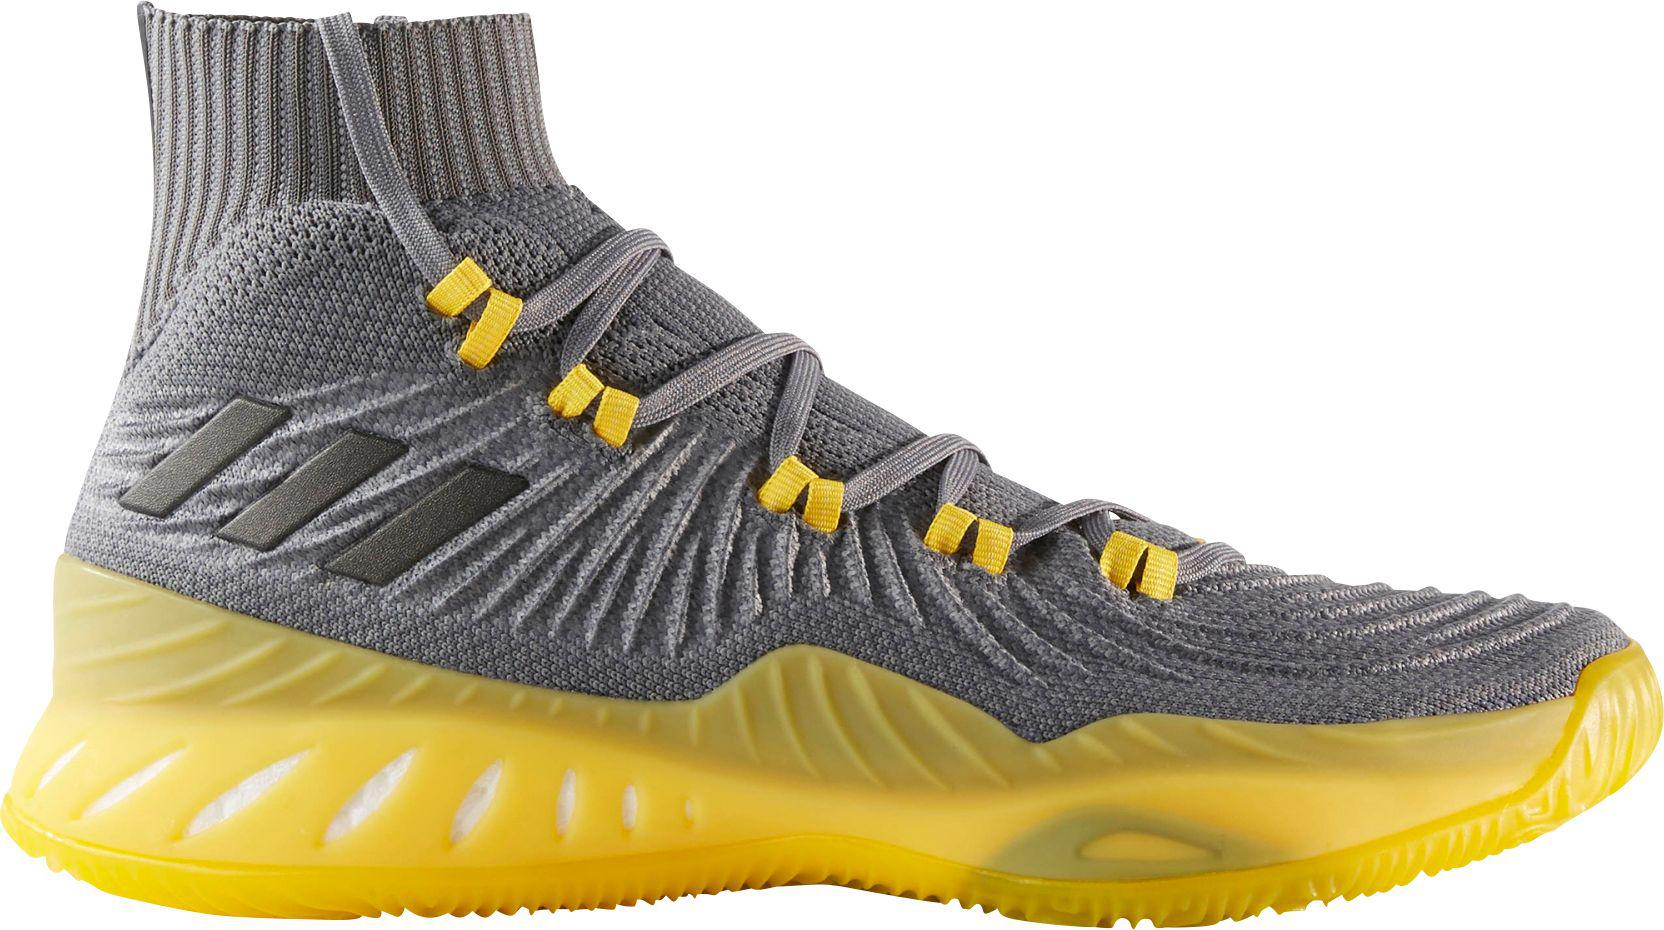 huge discount 69f45 8b1d9 Adidas - Multicolor Crazy Explosive 2017 Pk Basketball Shoes for Men - Lyst